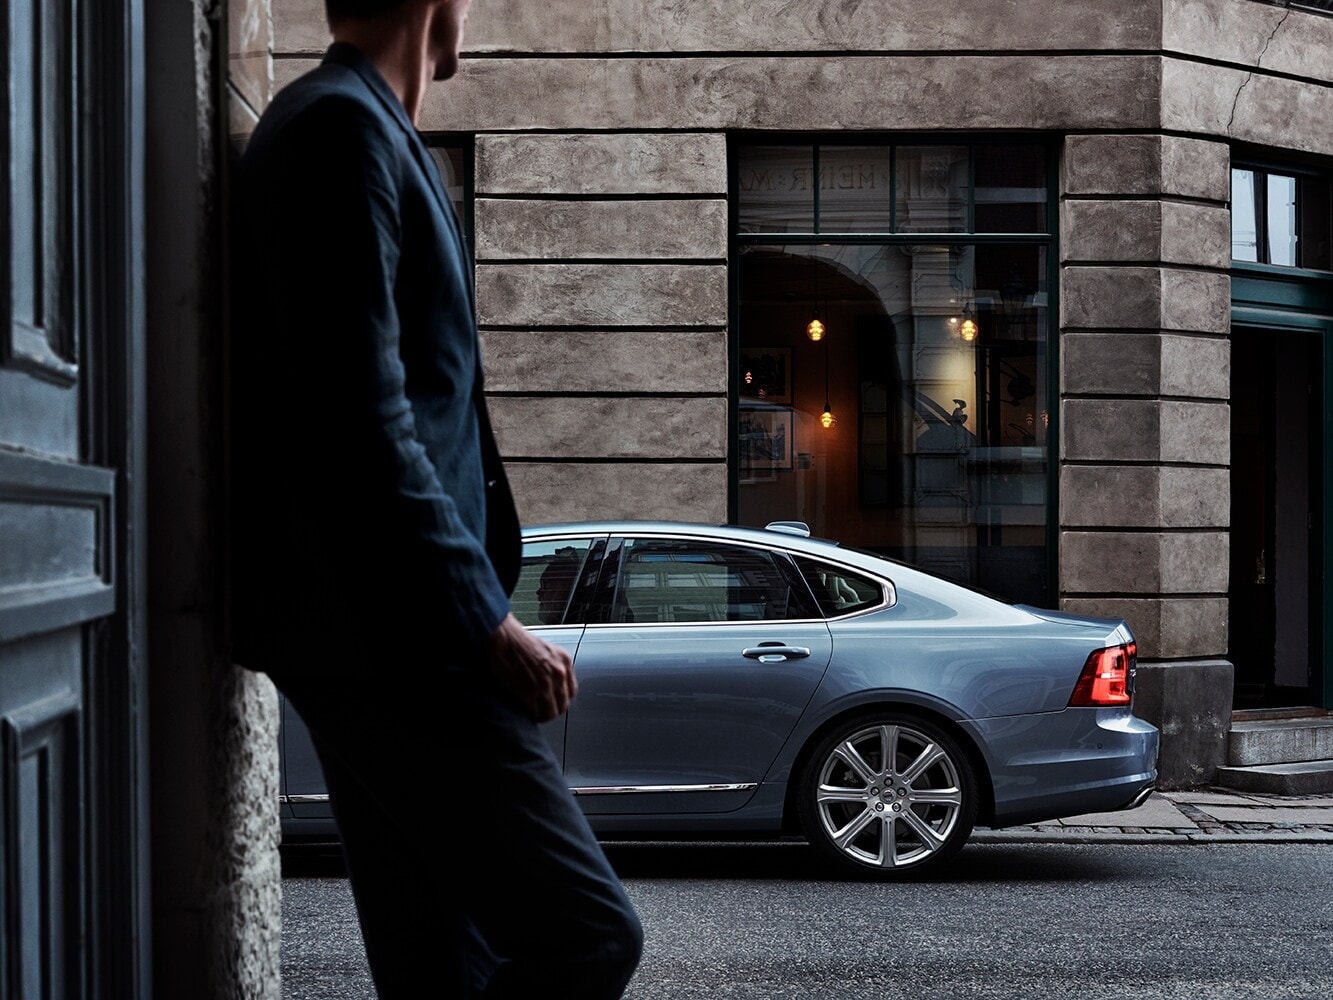 Side view of the rear of a Volvo S90 on a city street with a man reclining against a wall in the foreground